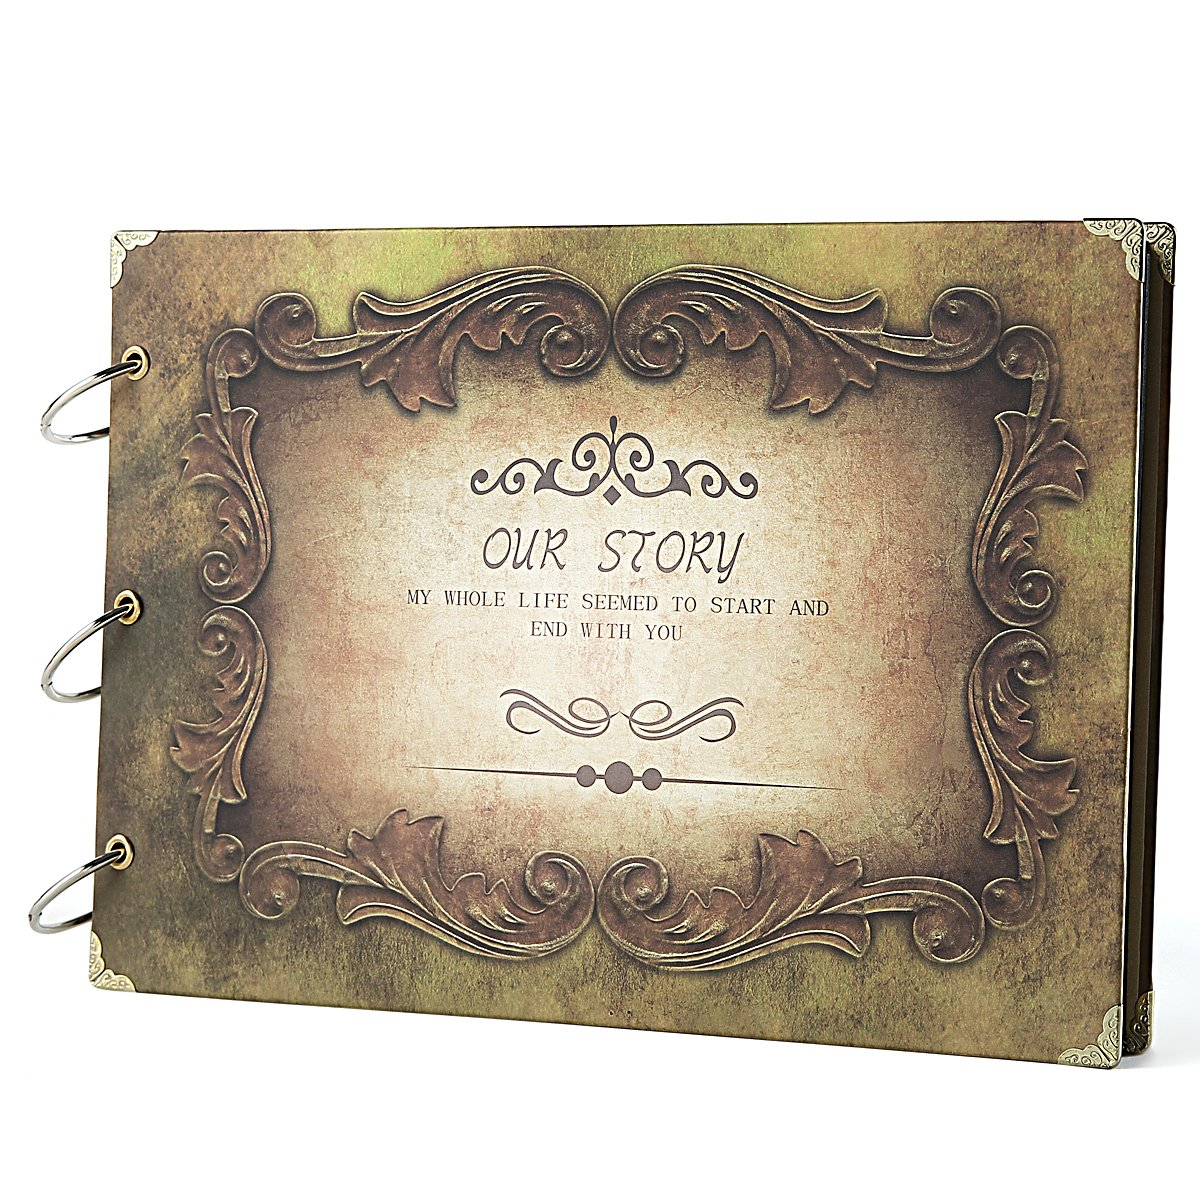 SICOHOME Scrapbook, Vintage Our Story Scrapbook Album for Wedding Guest Book